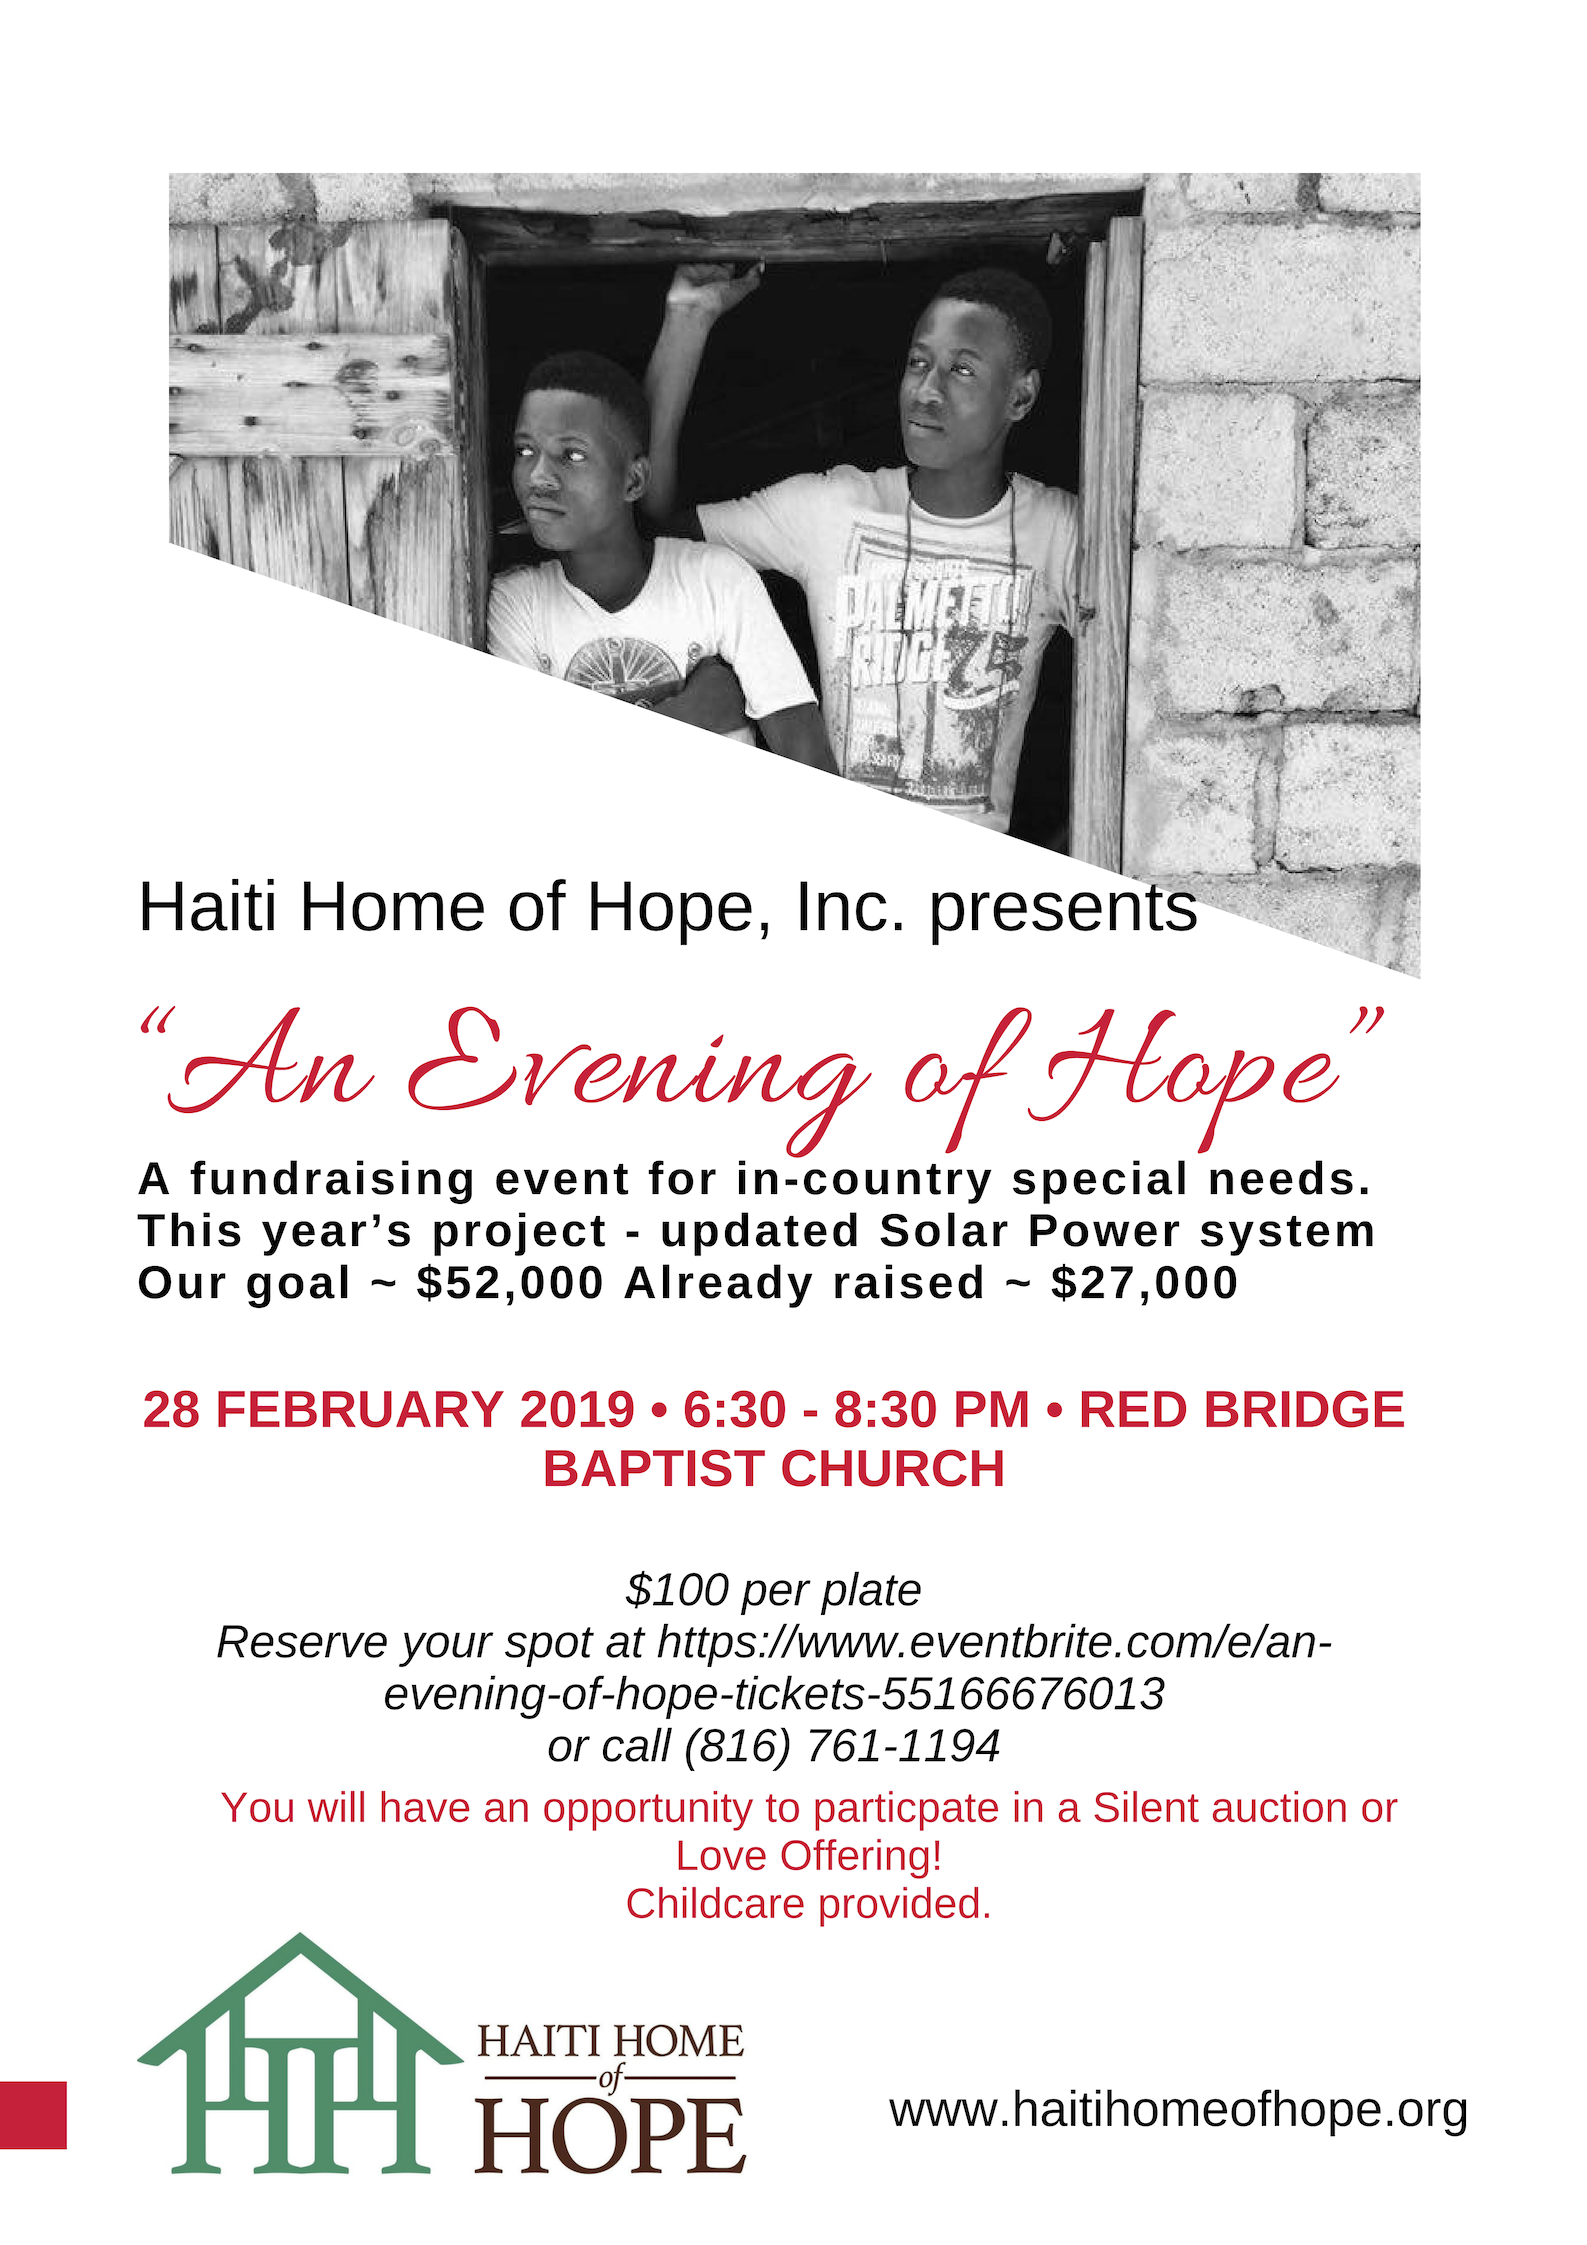 An Evening of Hope – Haiti Home of Hope